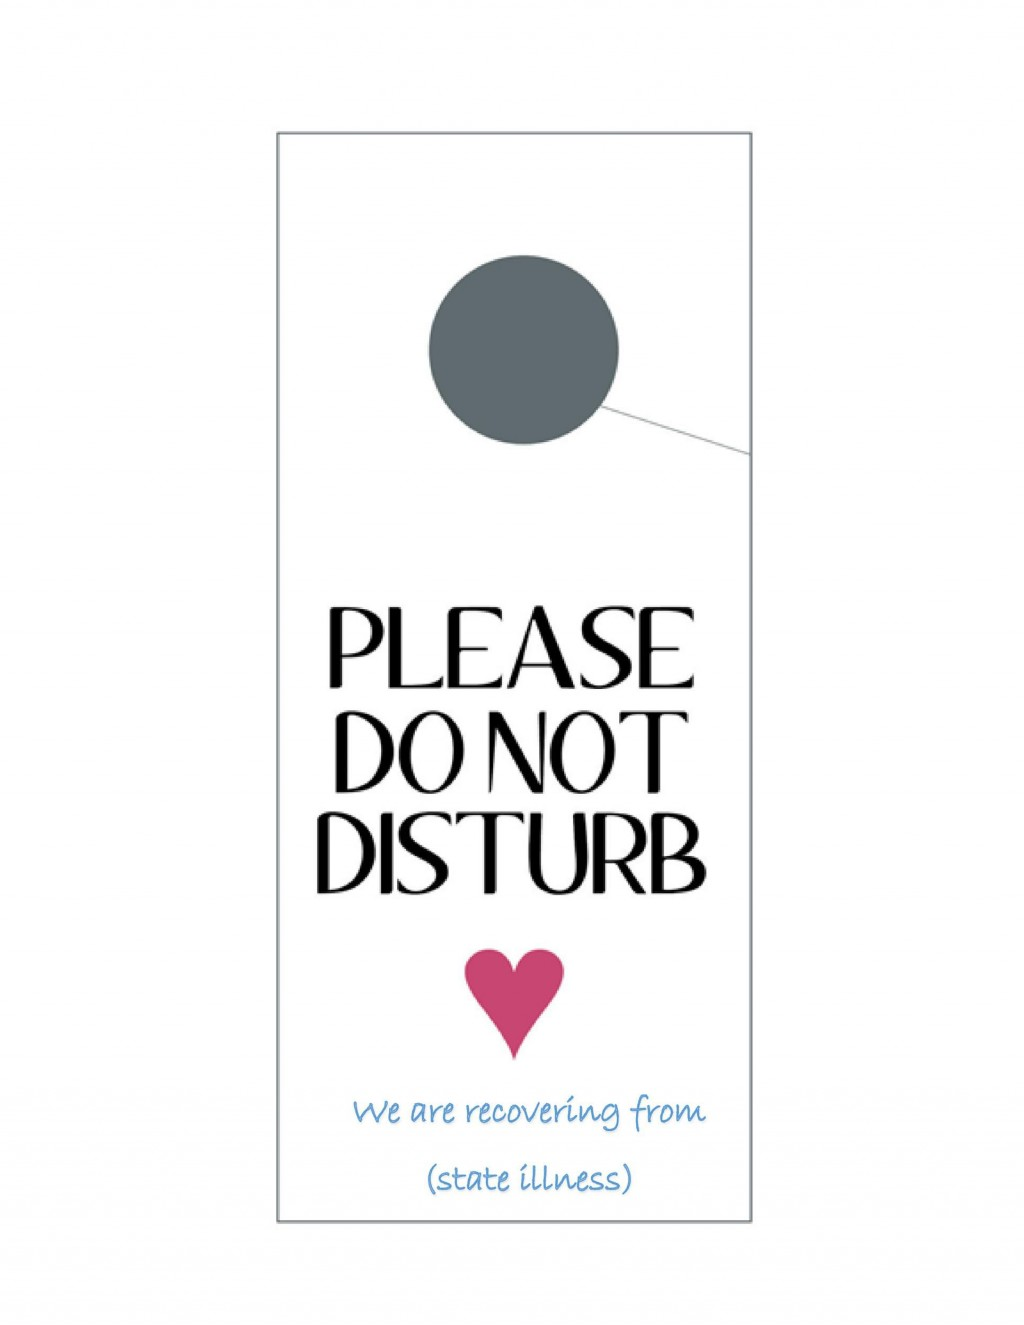 006 Awful Door Hanger Template Word High Definition  Download Free Blank For MicrosoftLarge